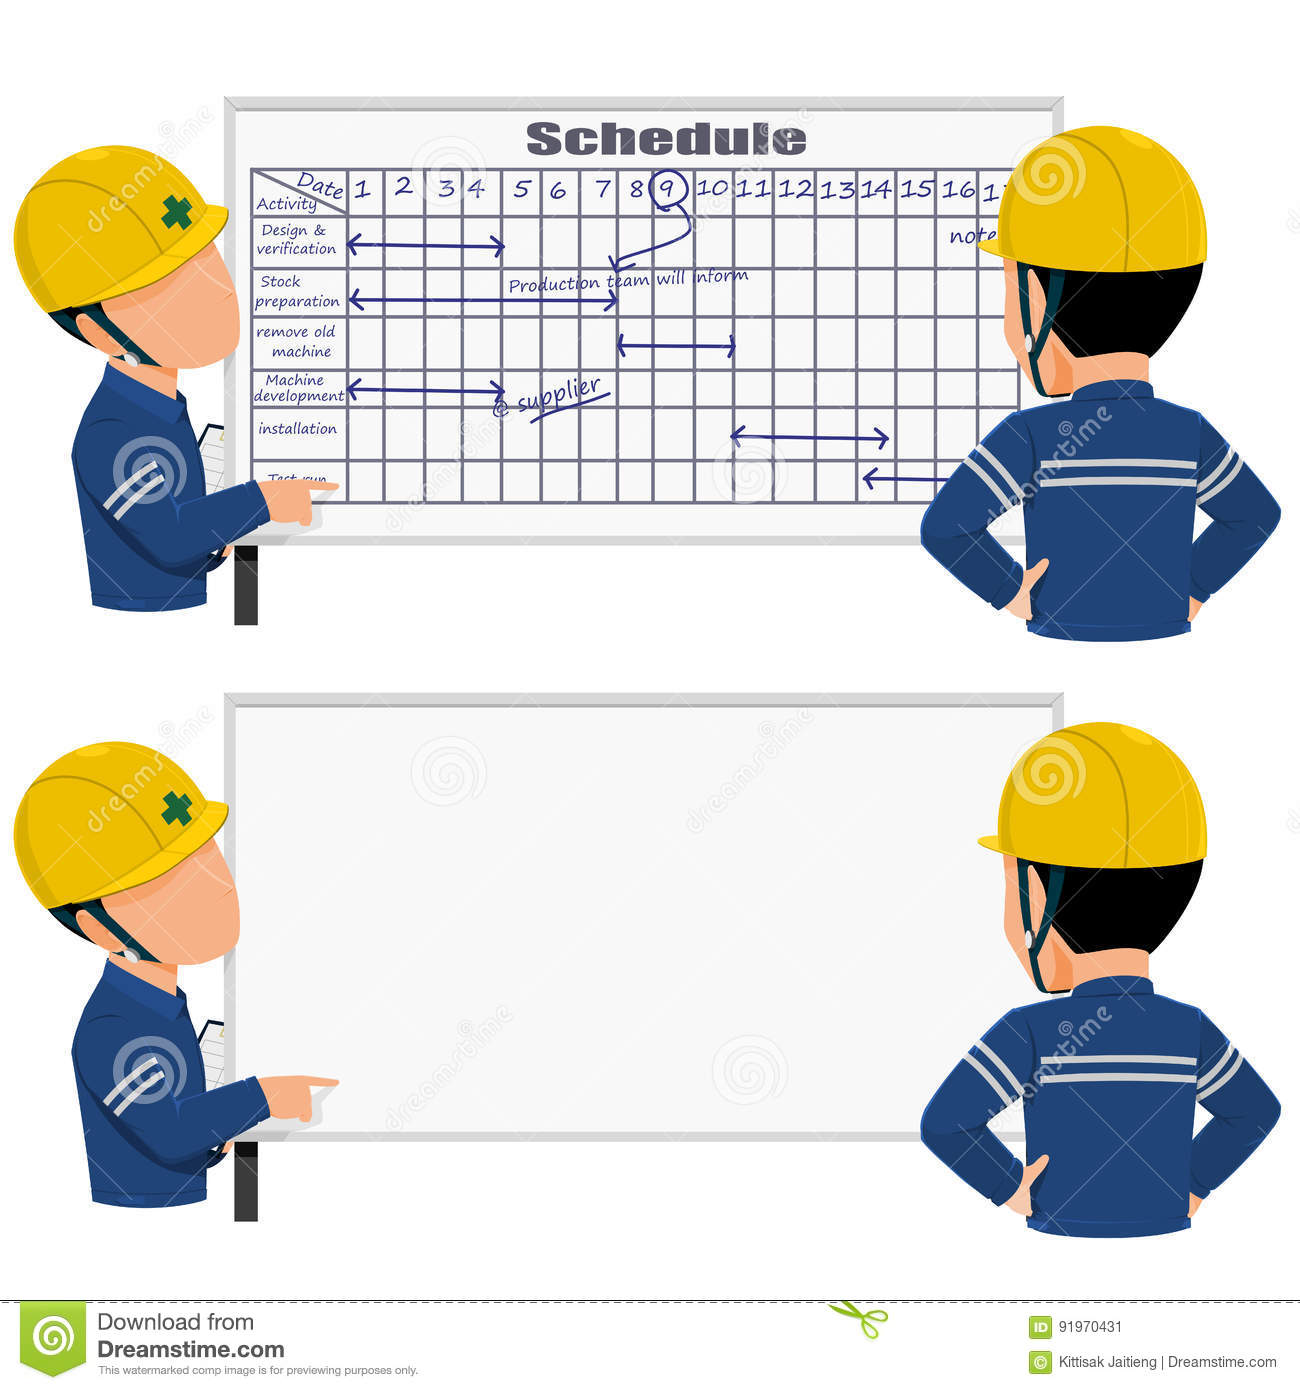 gantt cartoons  illustrations  u0026 vector stock images